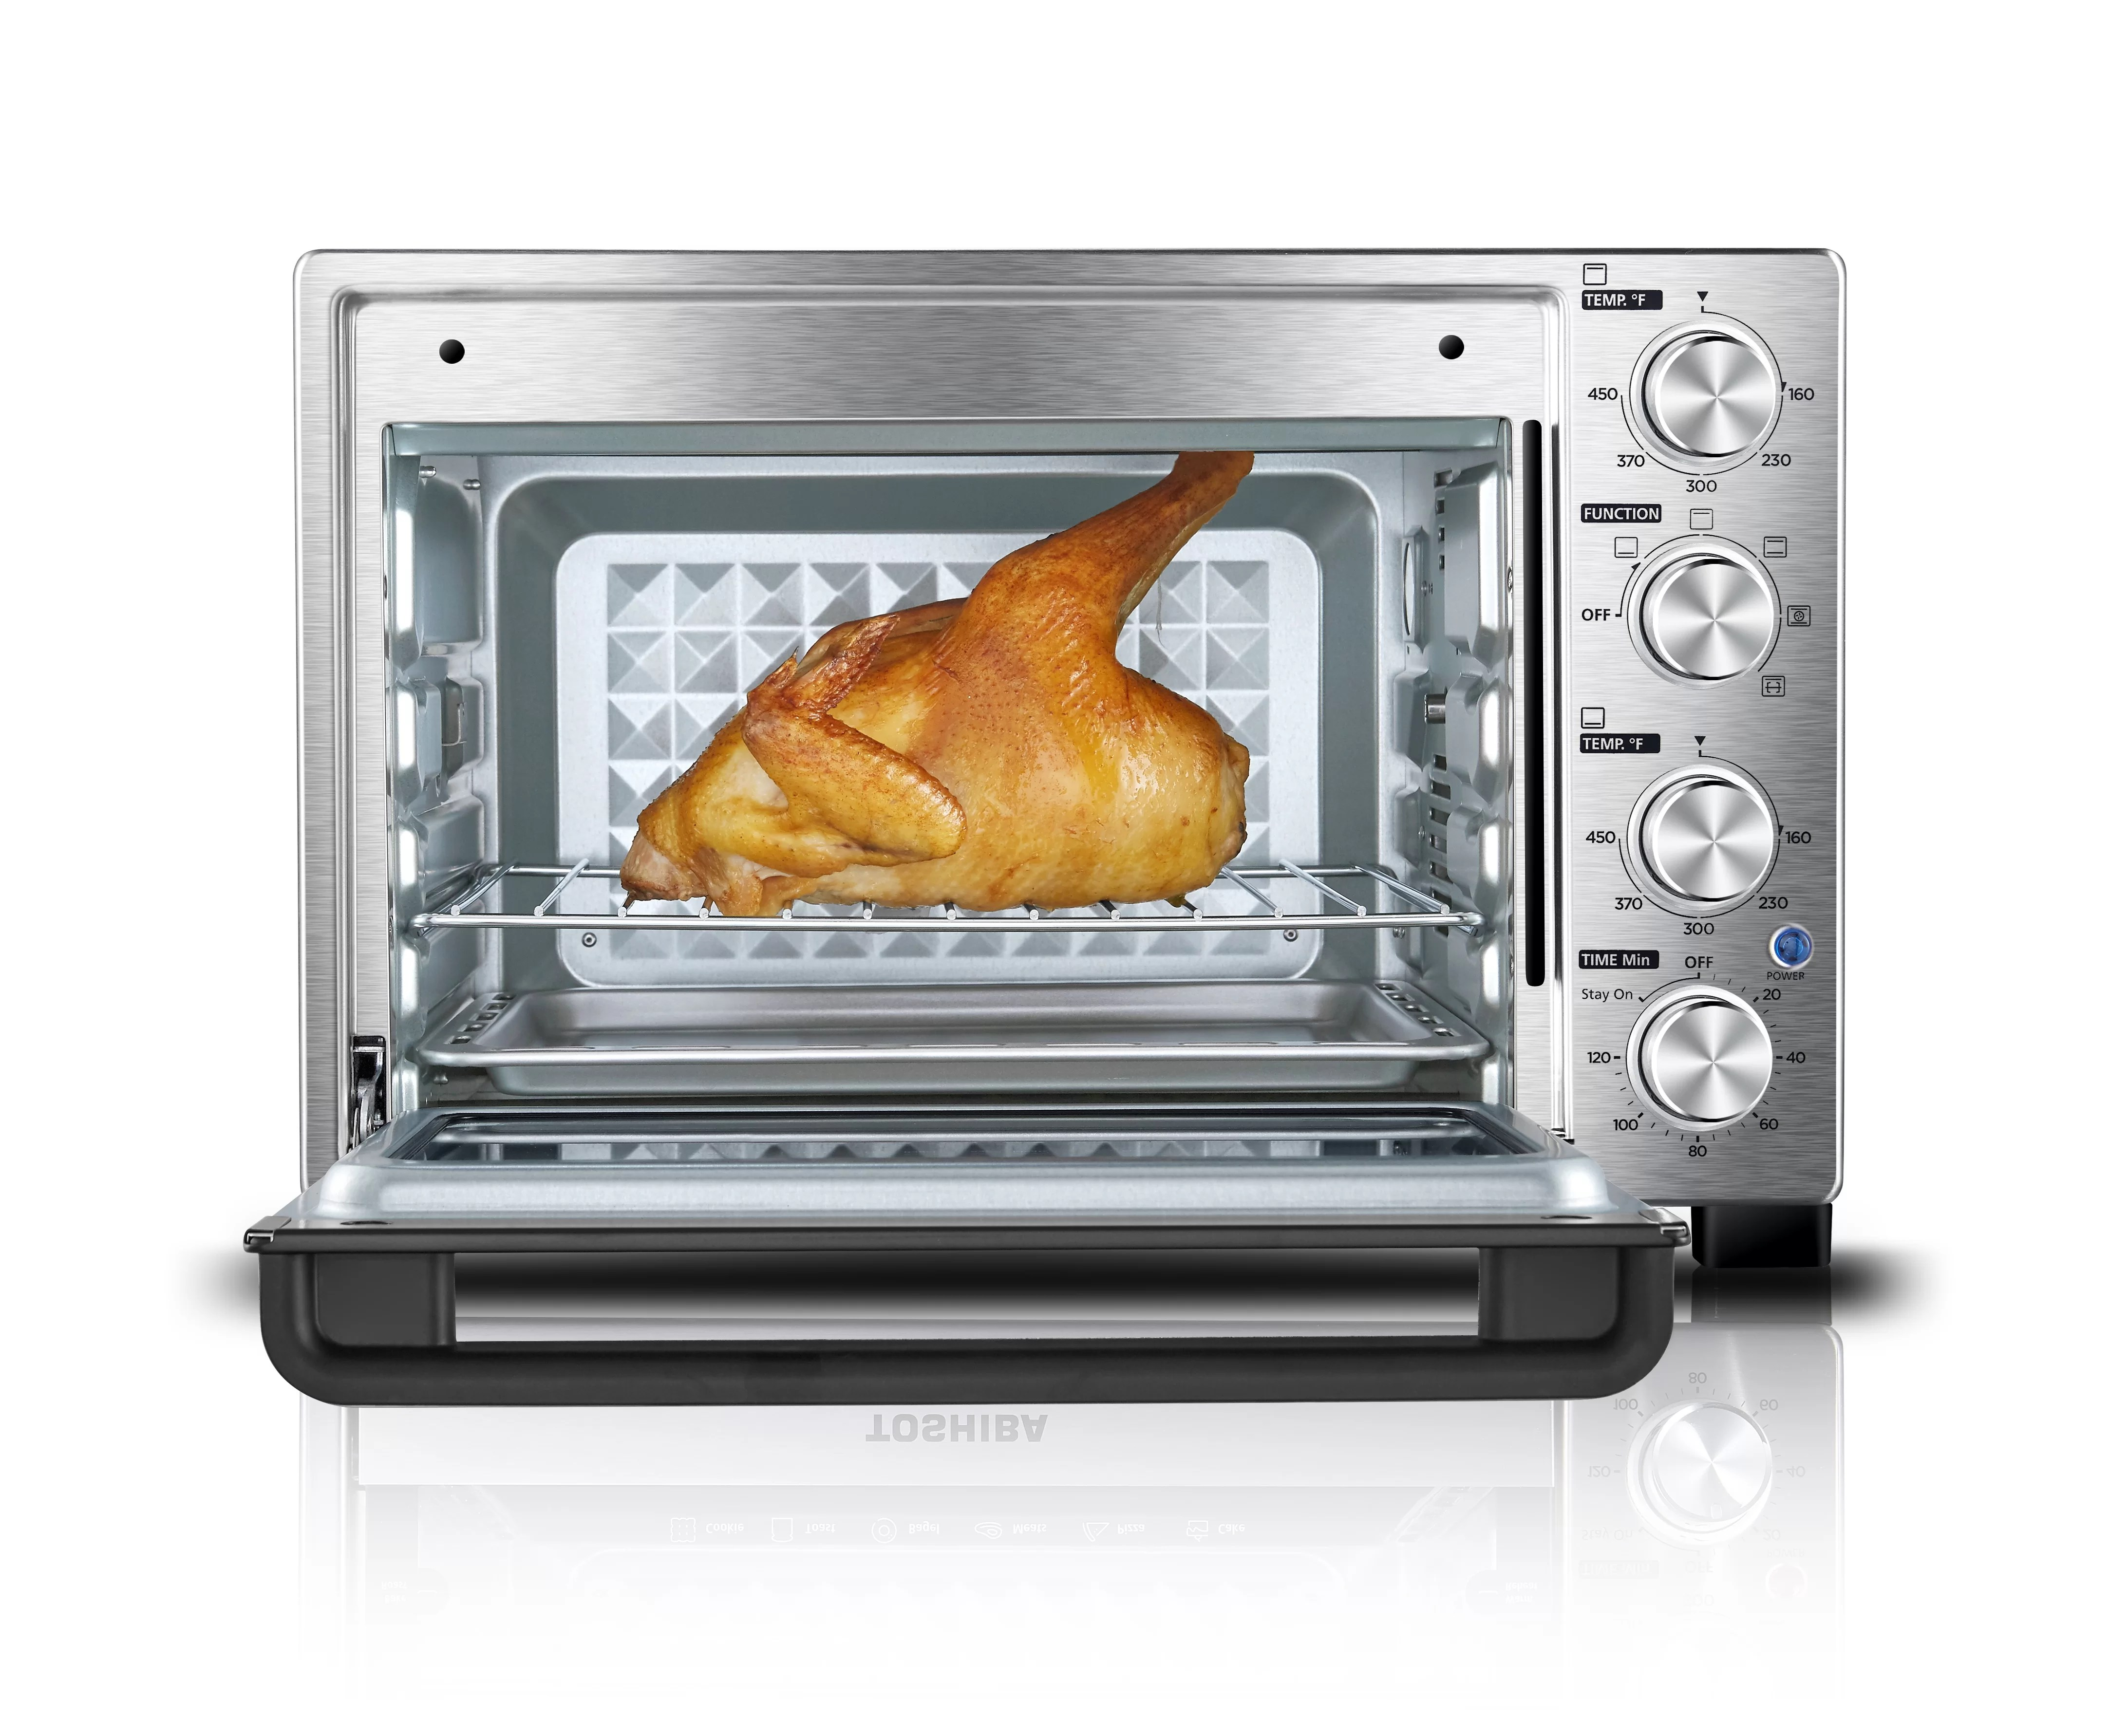 Oster Convection Countertop Oven Reviews Convection Toaster Oven